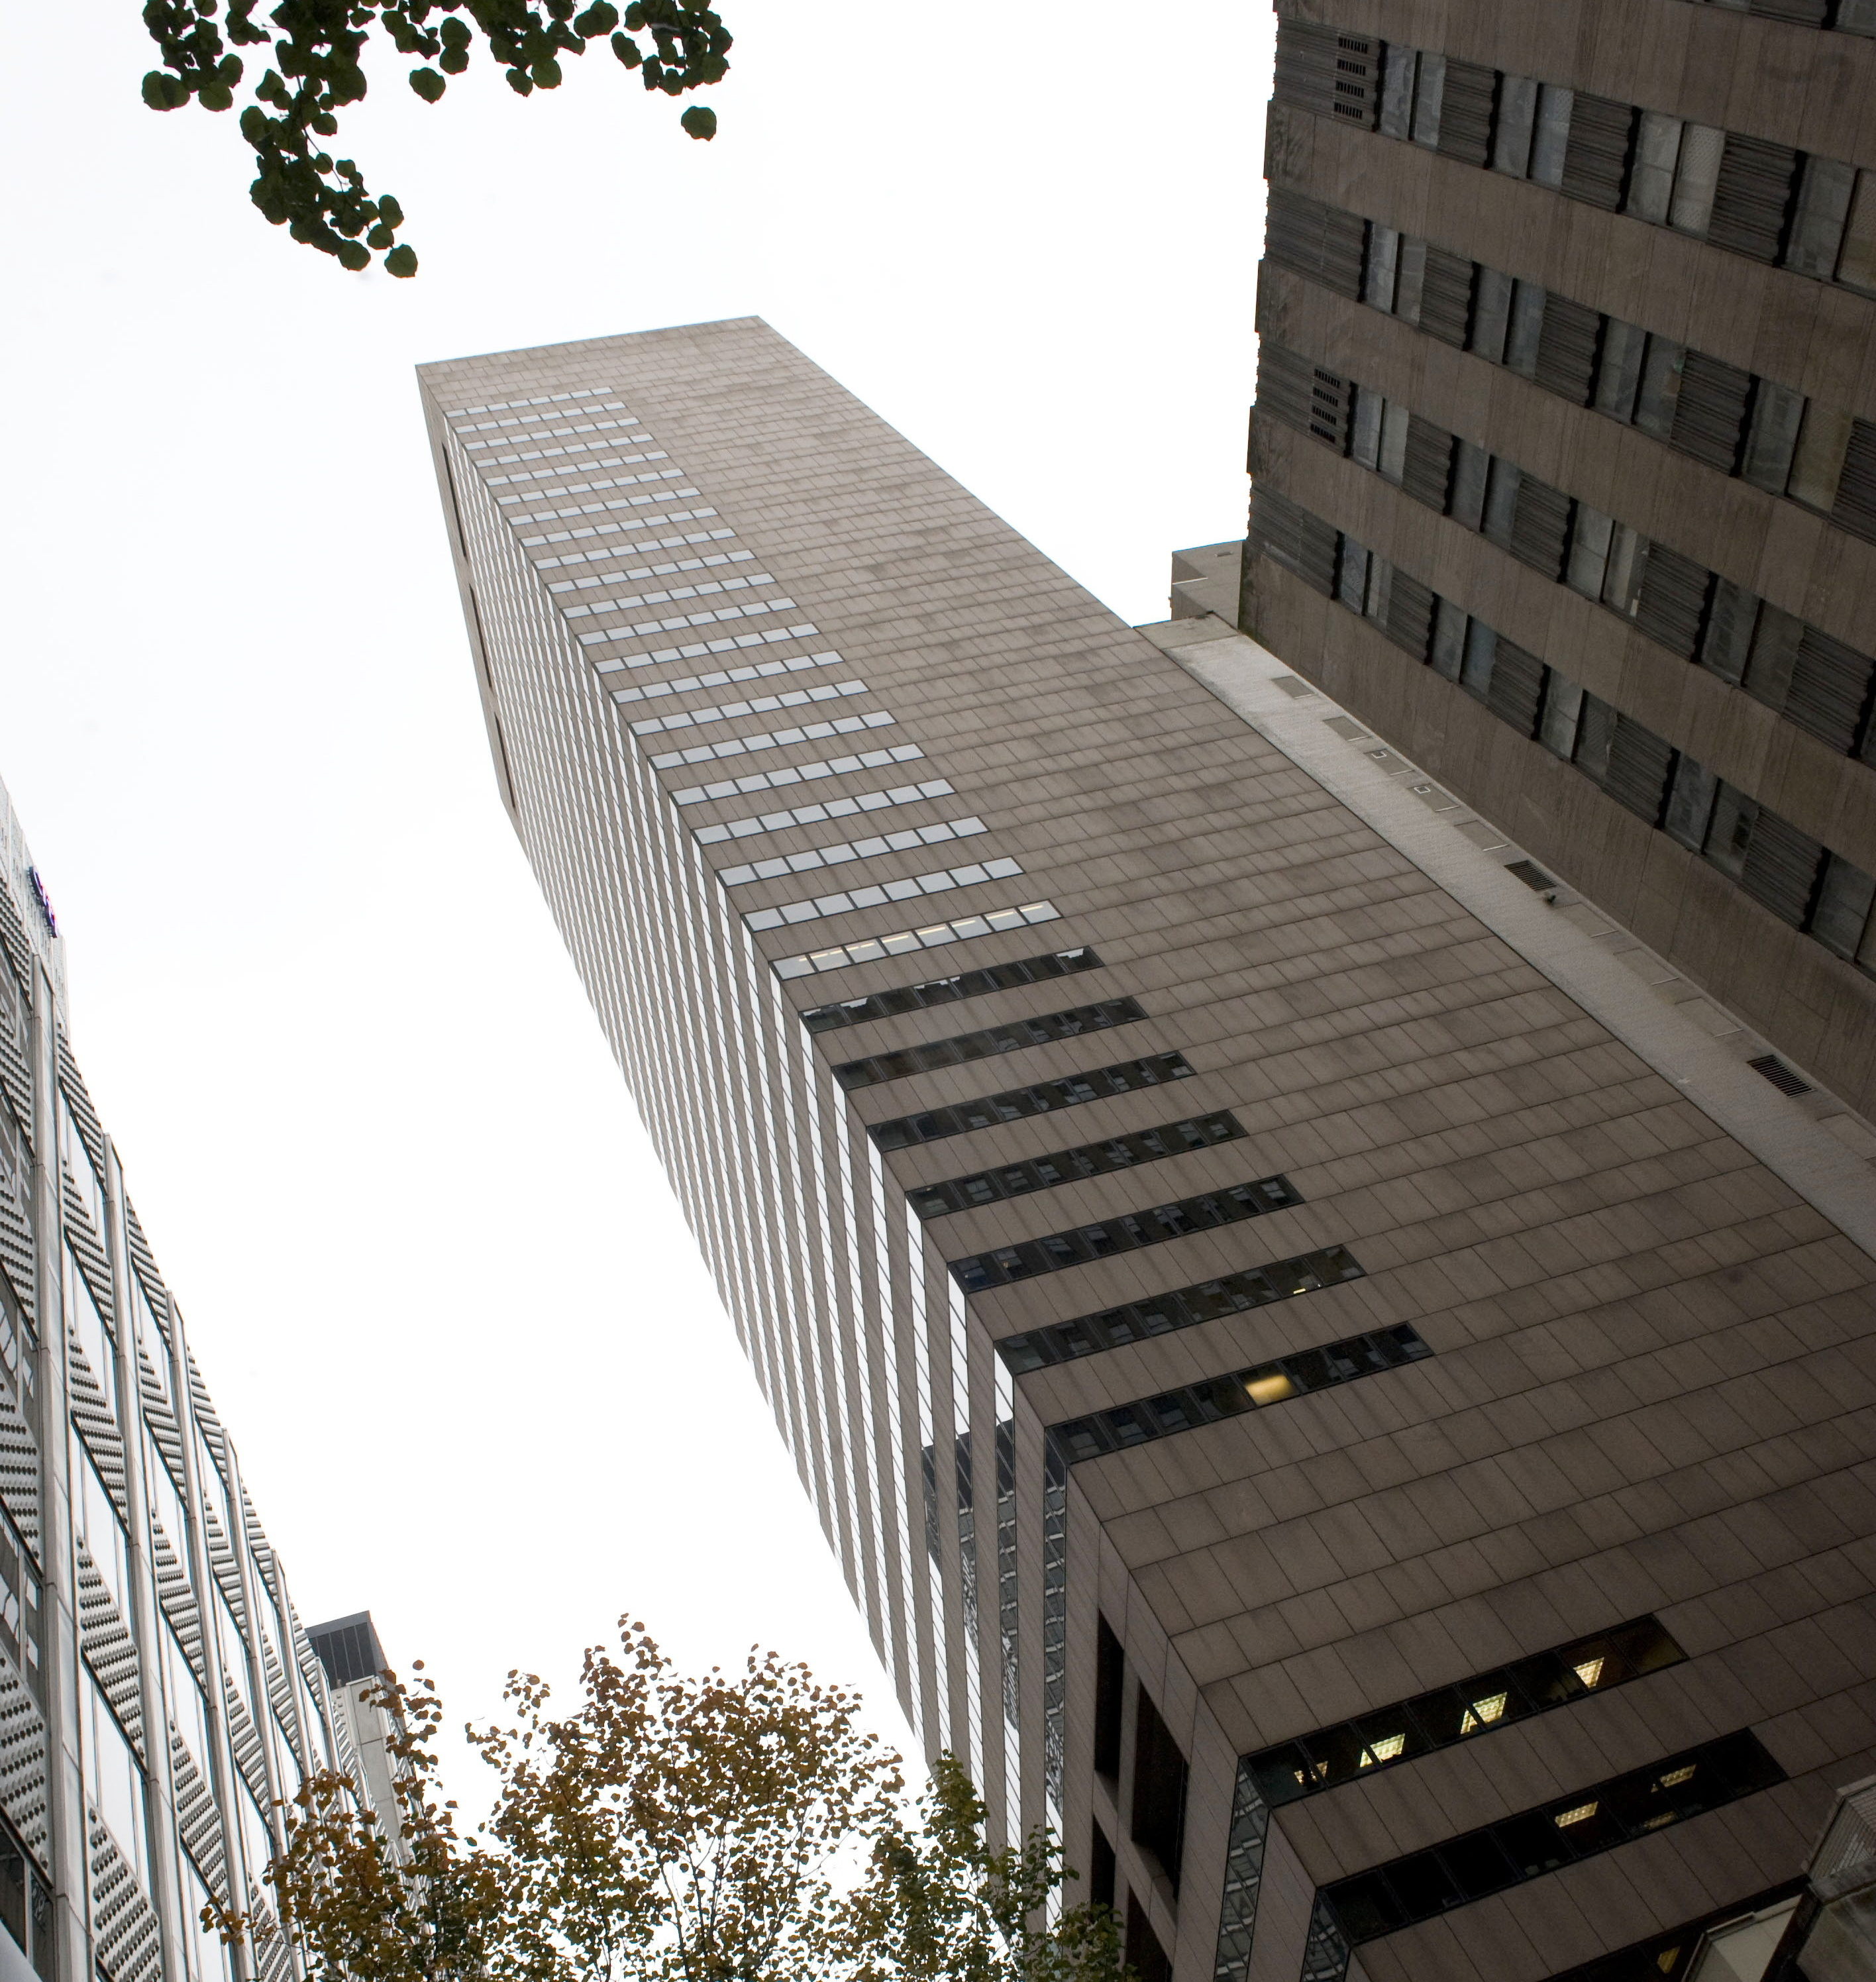 Court OKs Forfeiture Of New York Building With Ties To Iran